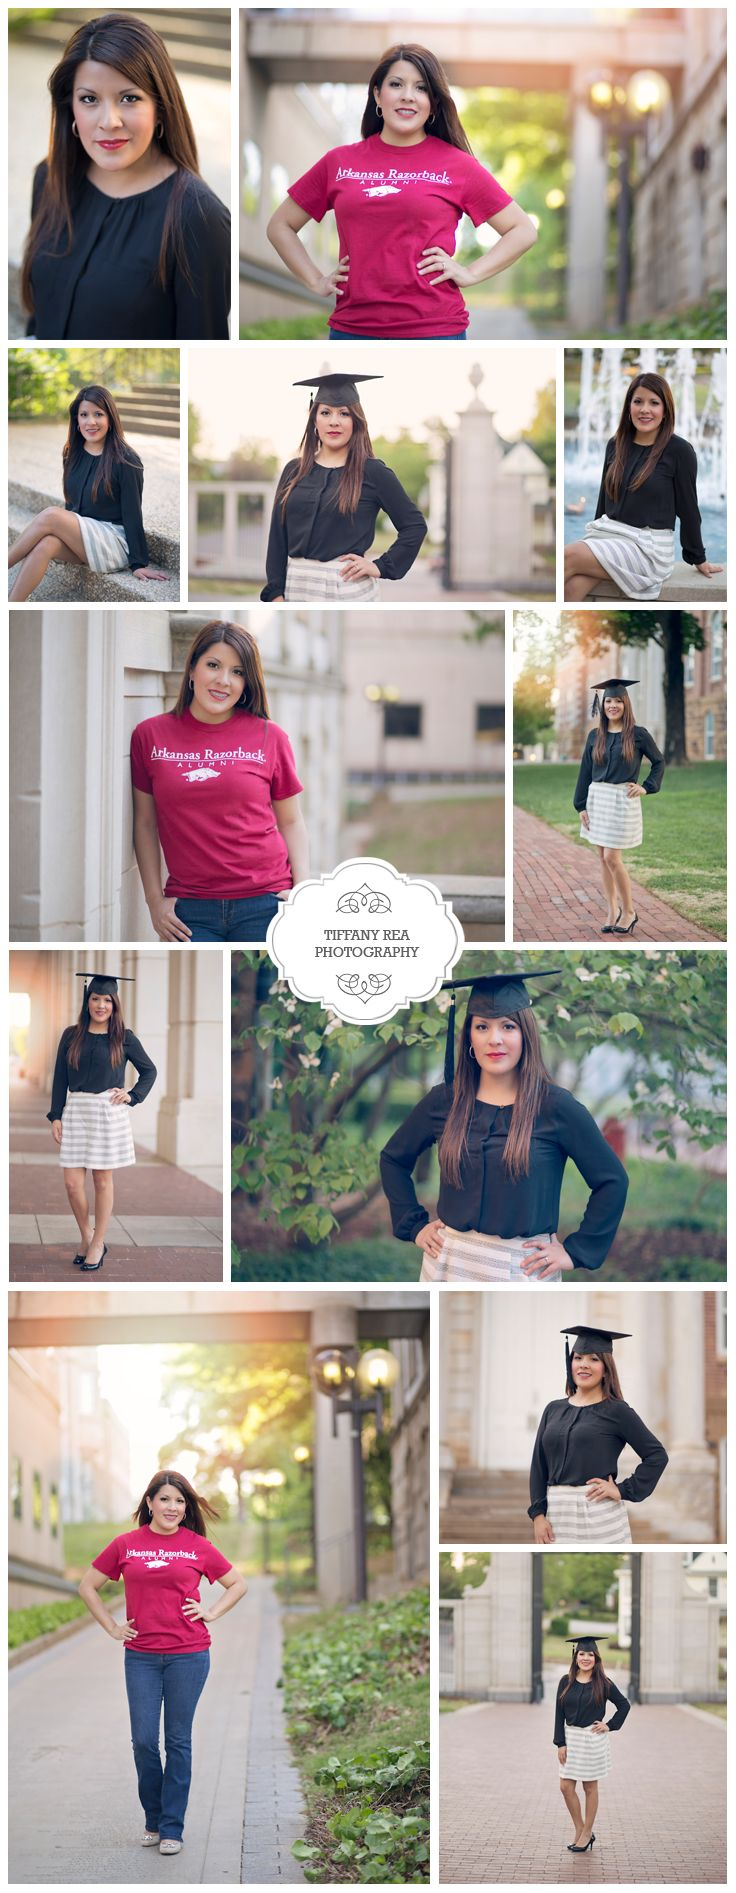 College Grad Photography Session - College Graduate - U of A - University of Arkansas - Fayetteville, Arkansas - Tiffany Rea Photography